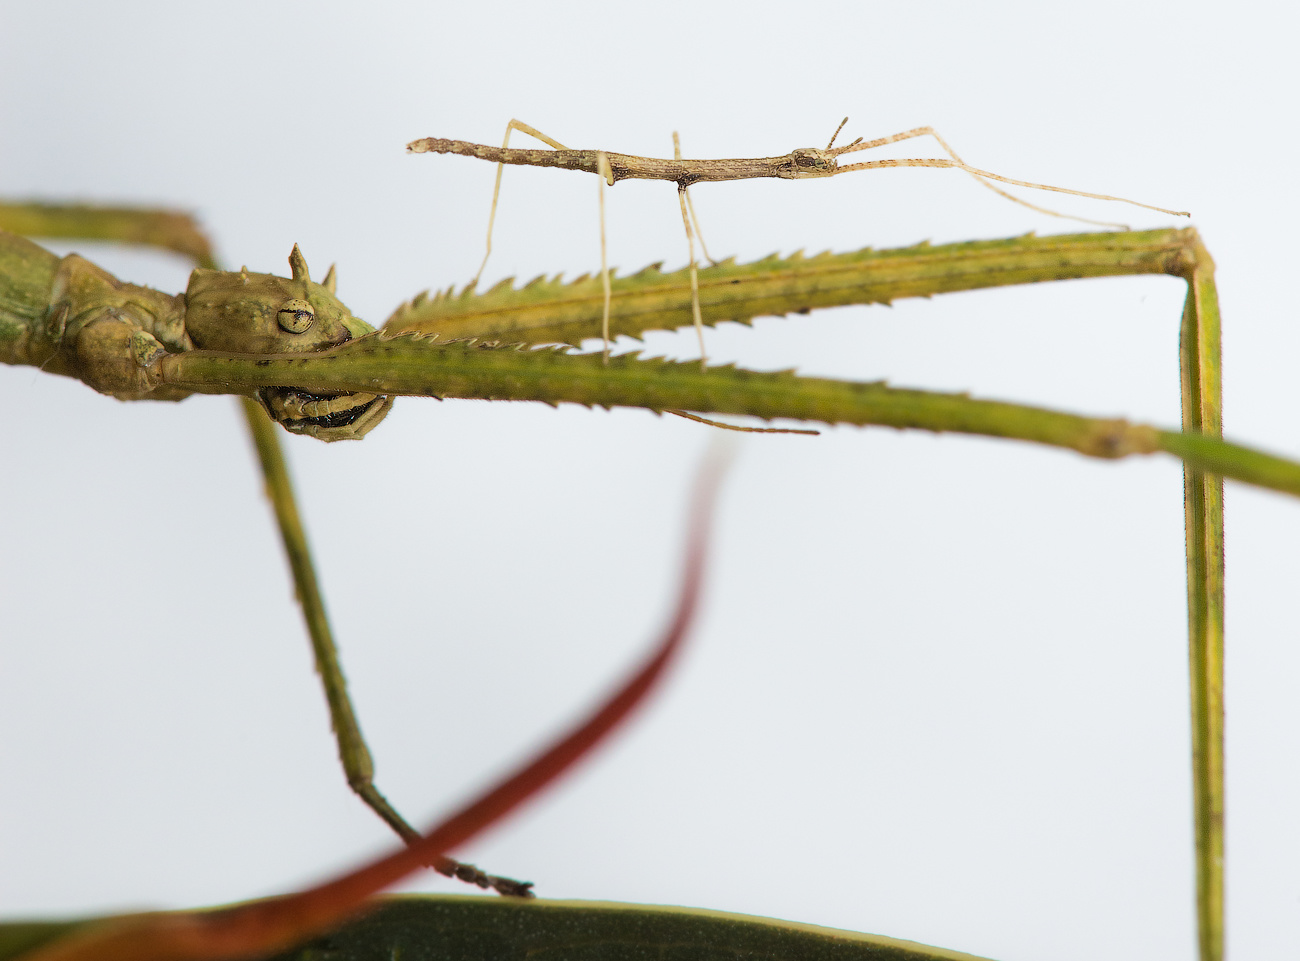 Baby stick-insect (Phasmatodea) with its parent by Dmitry A